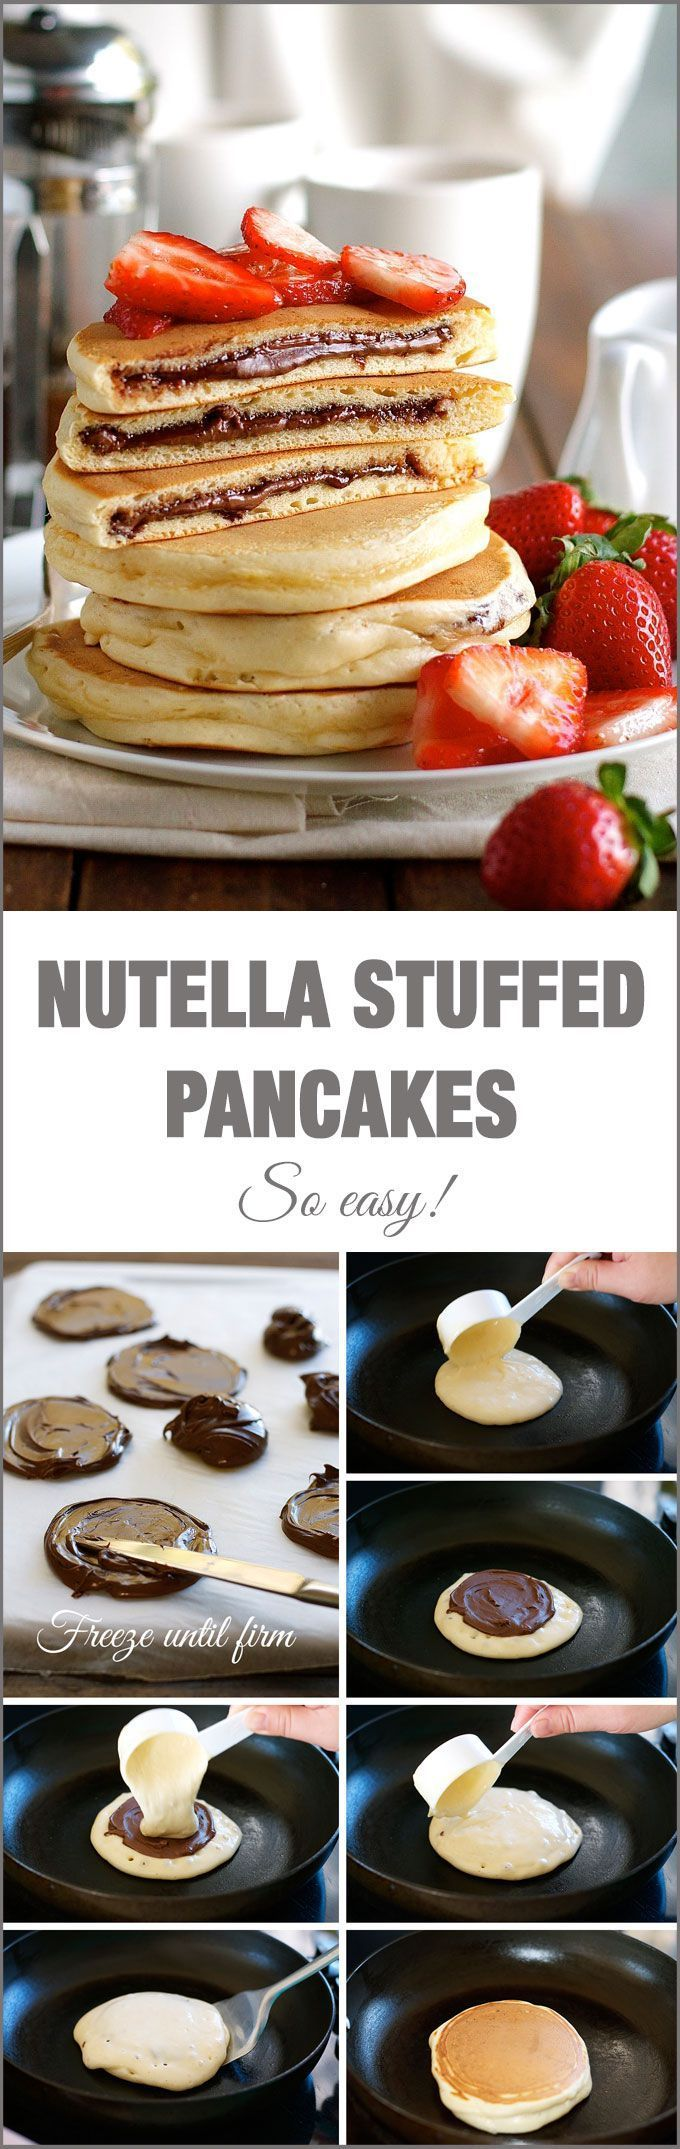 Nutella Stuffed Pancakes (try with jam/PB)